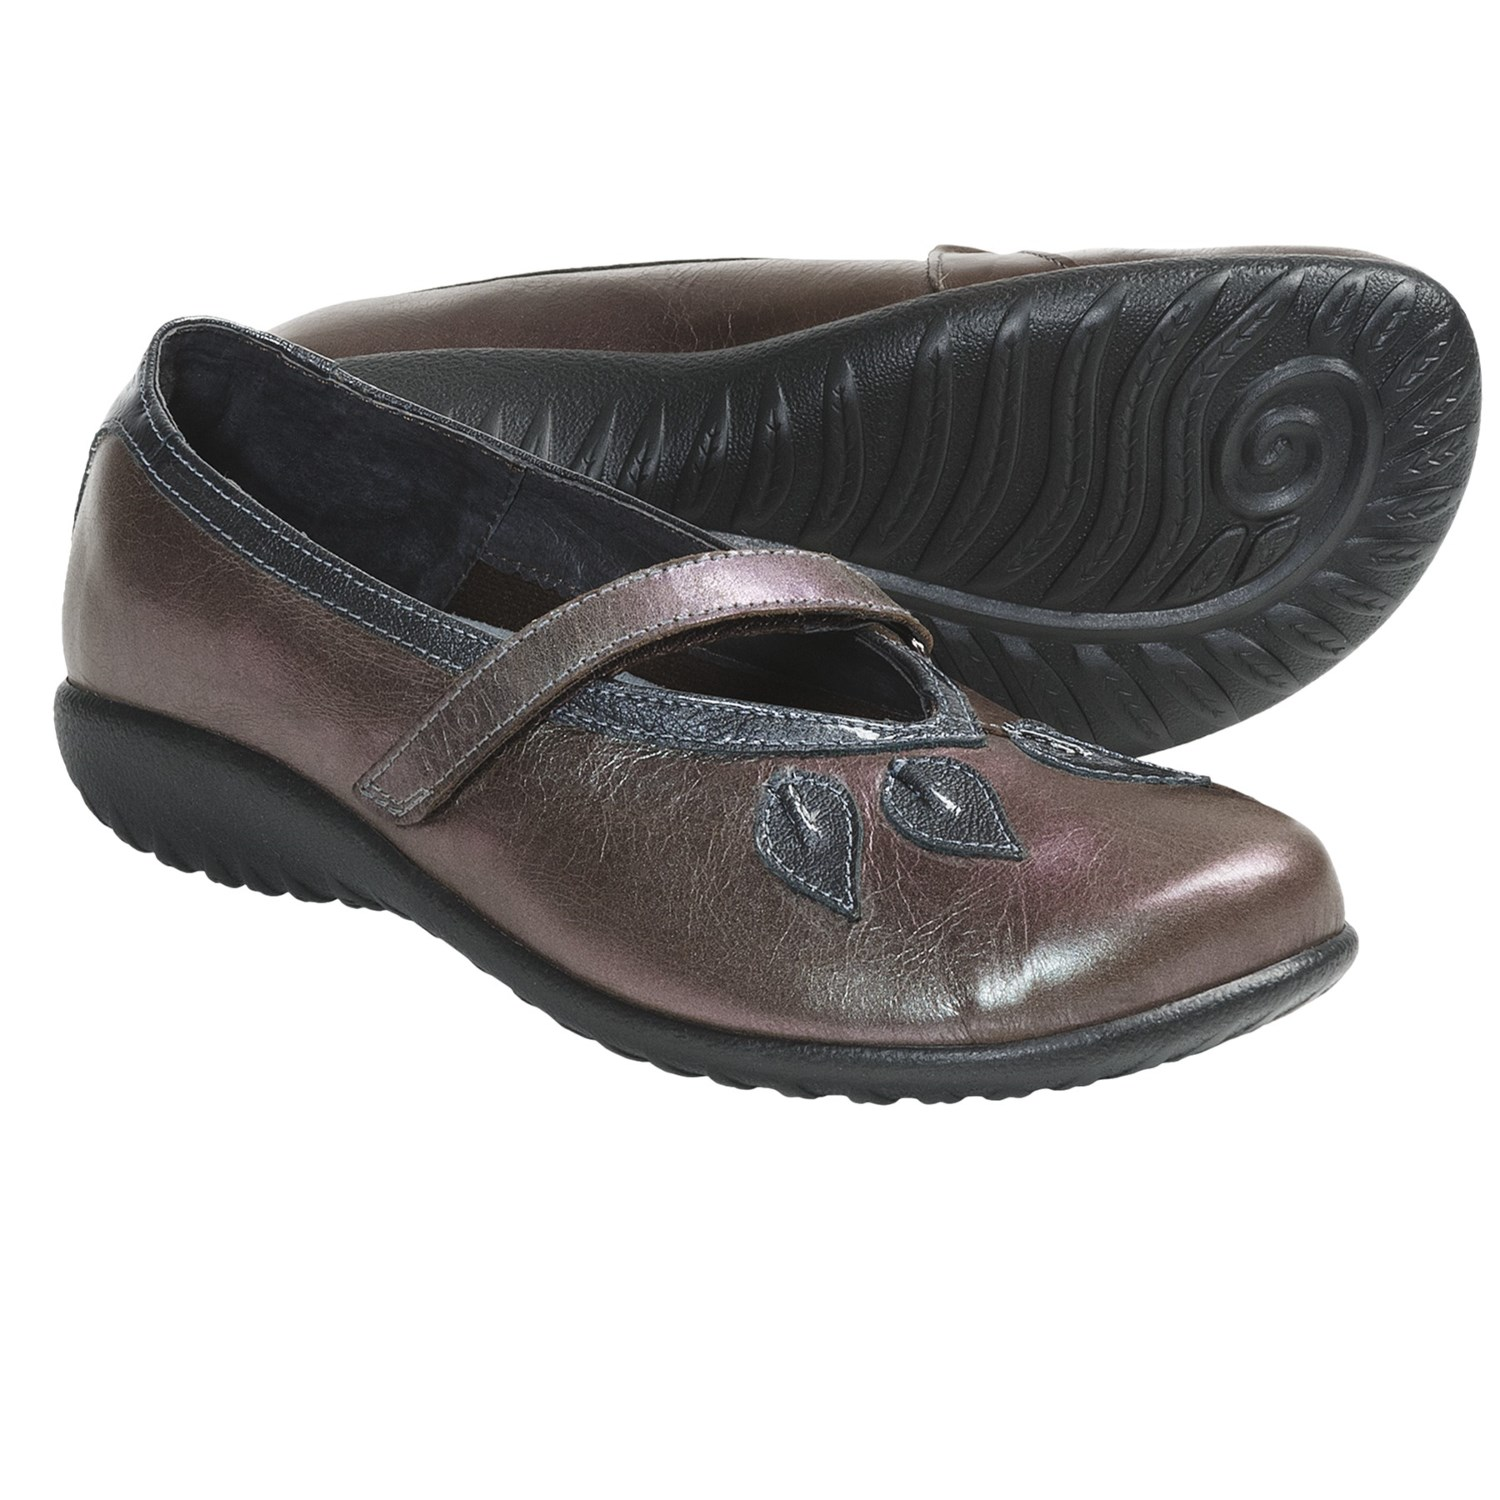 Naot Shoes For Women